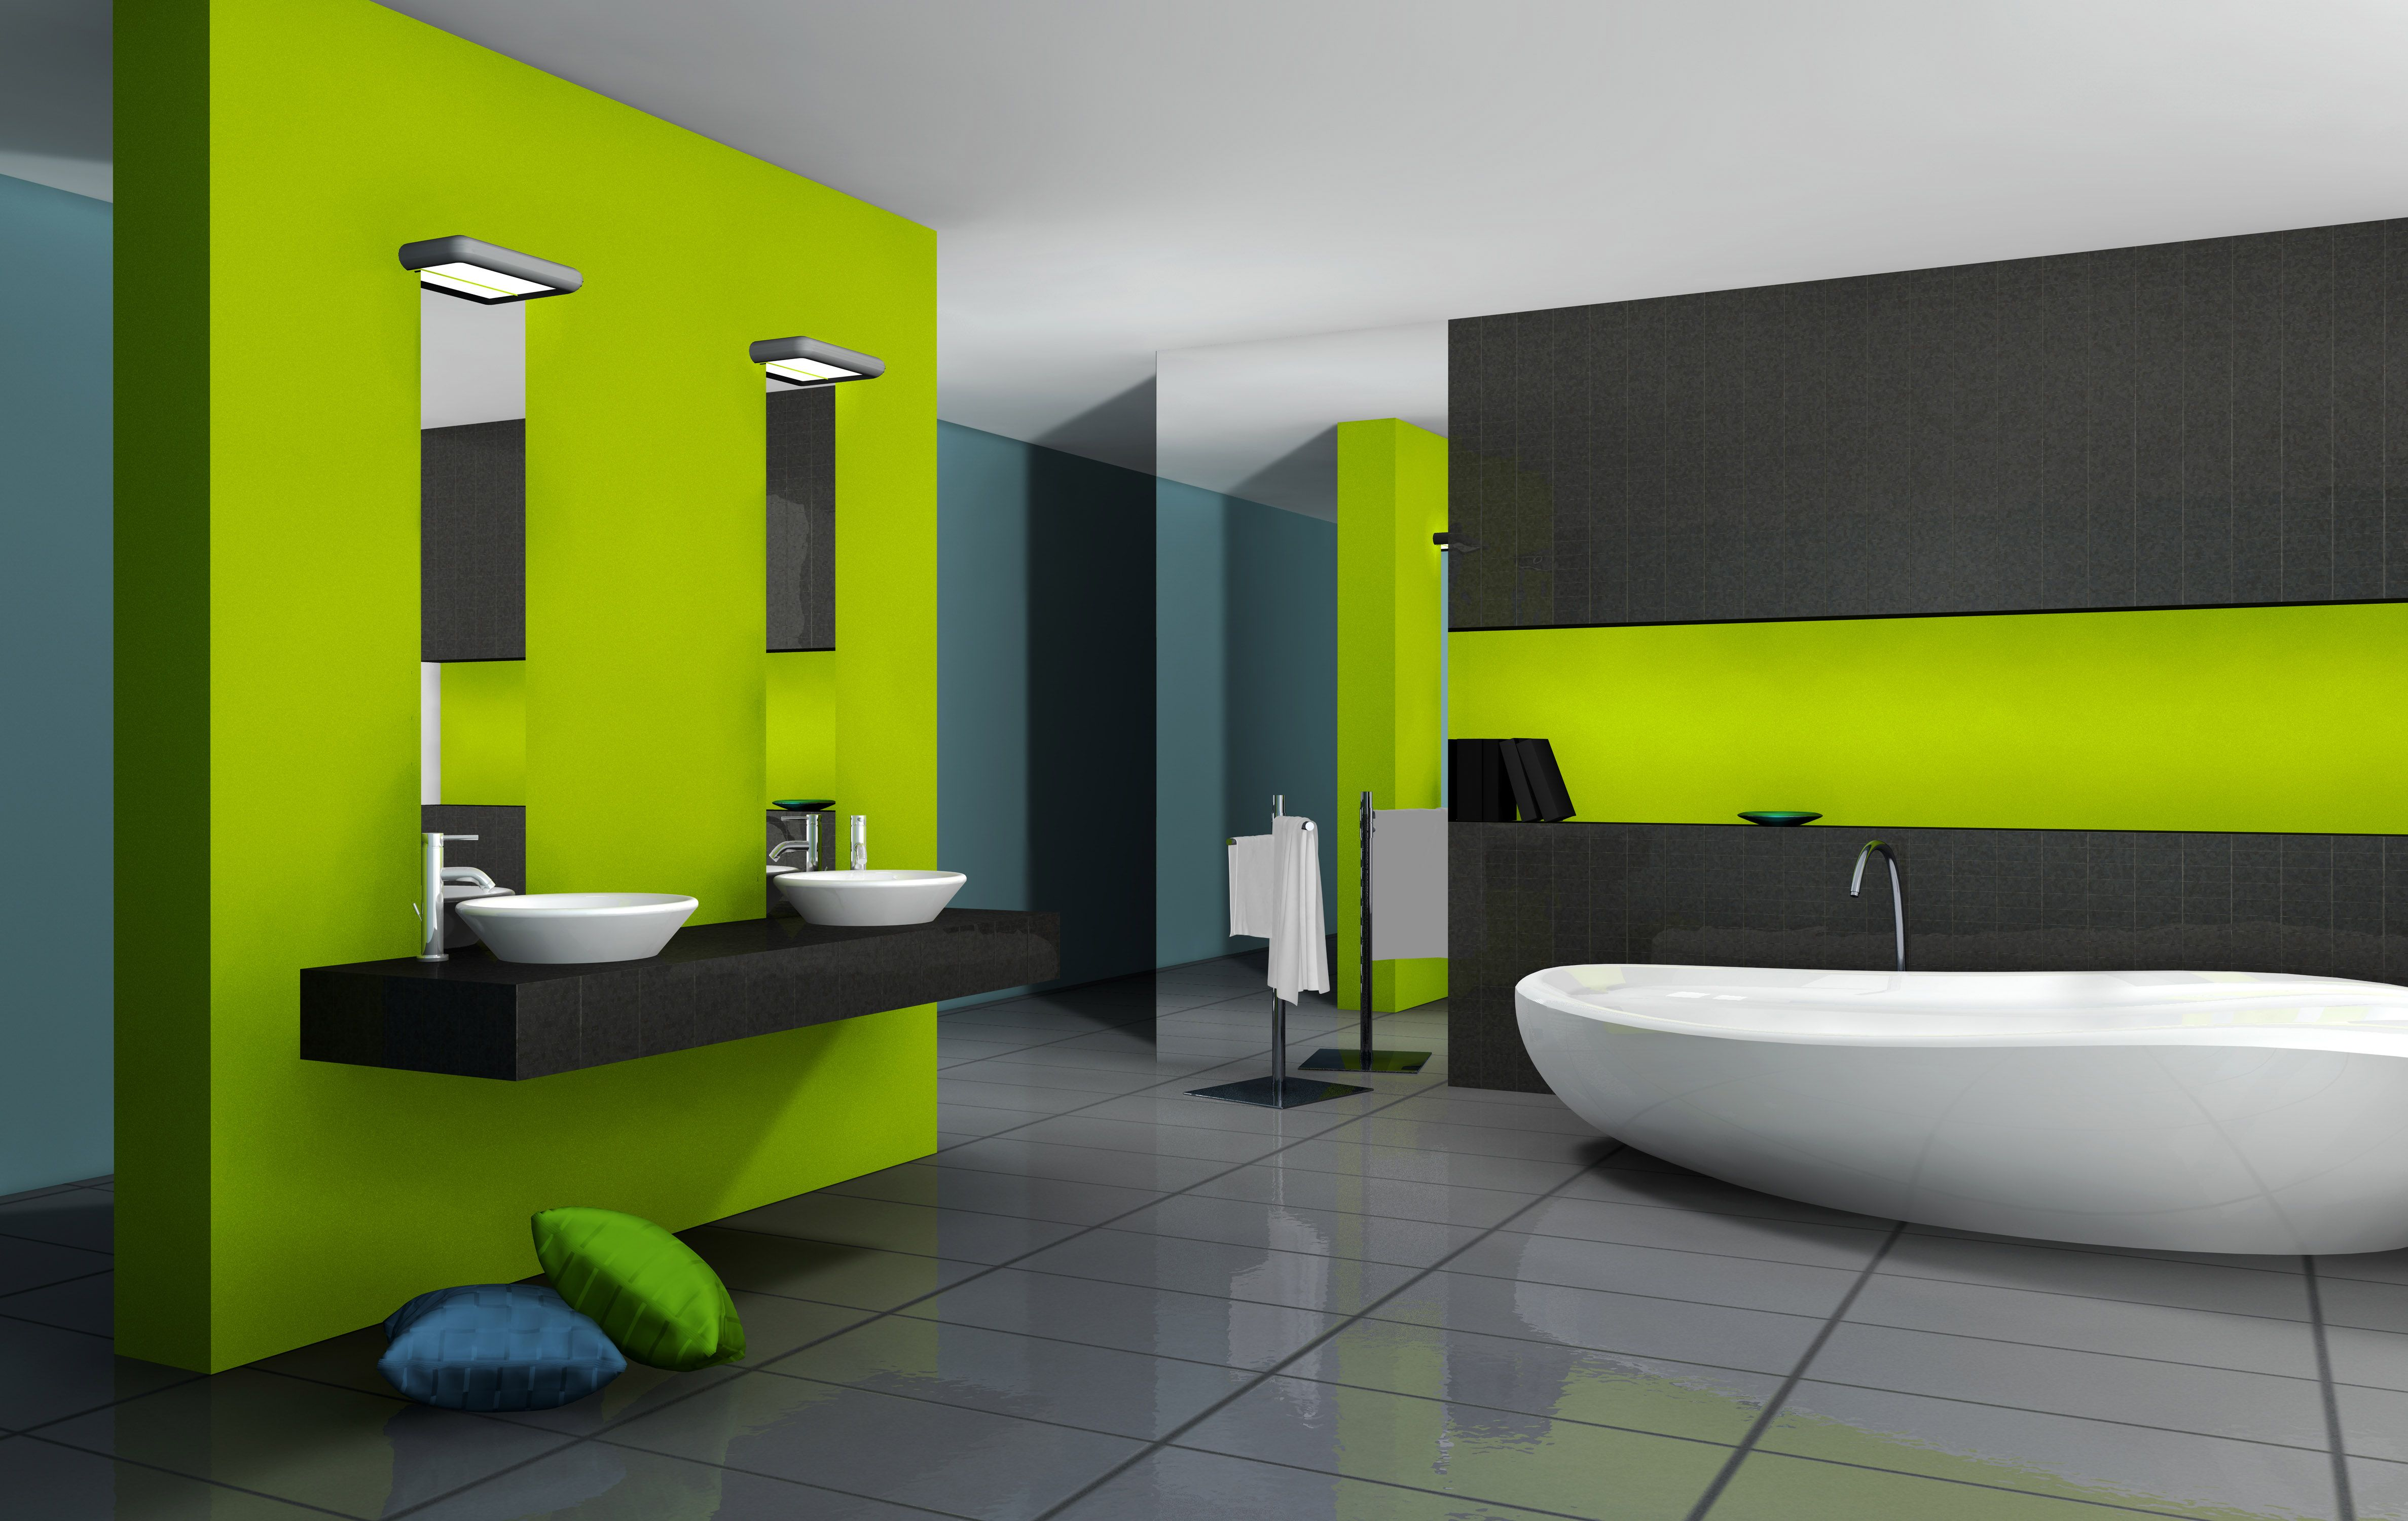 Kitchen Backsplash Bath And Other Home Related Design Ideas Green Bathroom Bathroom Inspiration Modern Contemporary Bathroom Designs